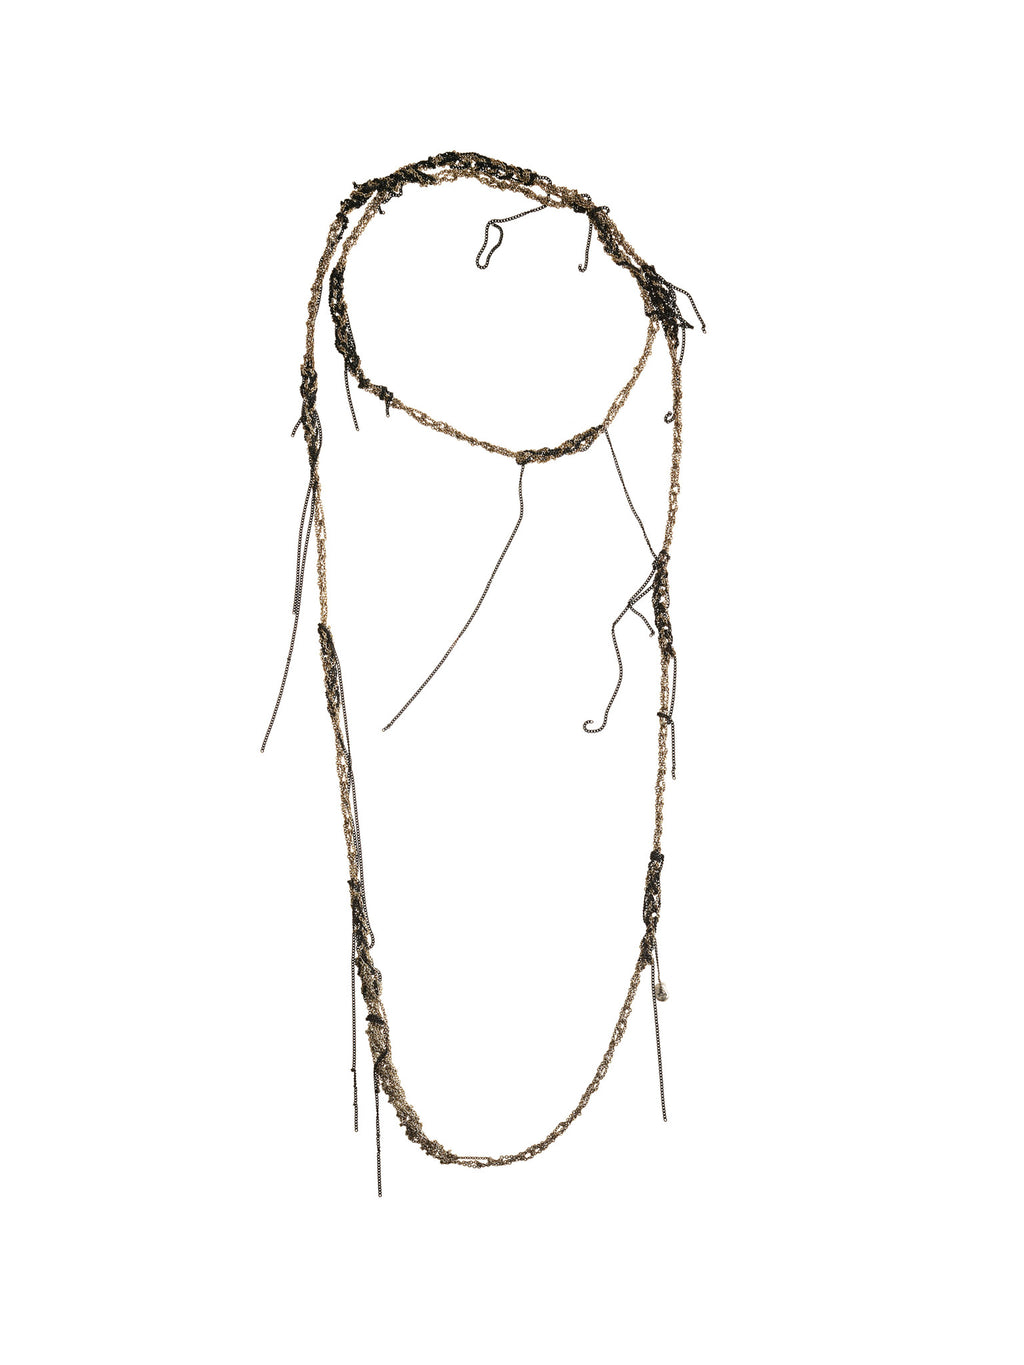 Hairy Simple Necklace in Silver + Faded silver